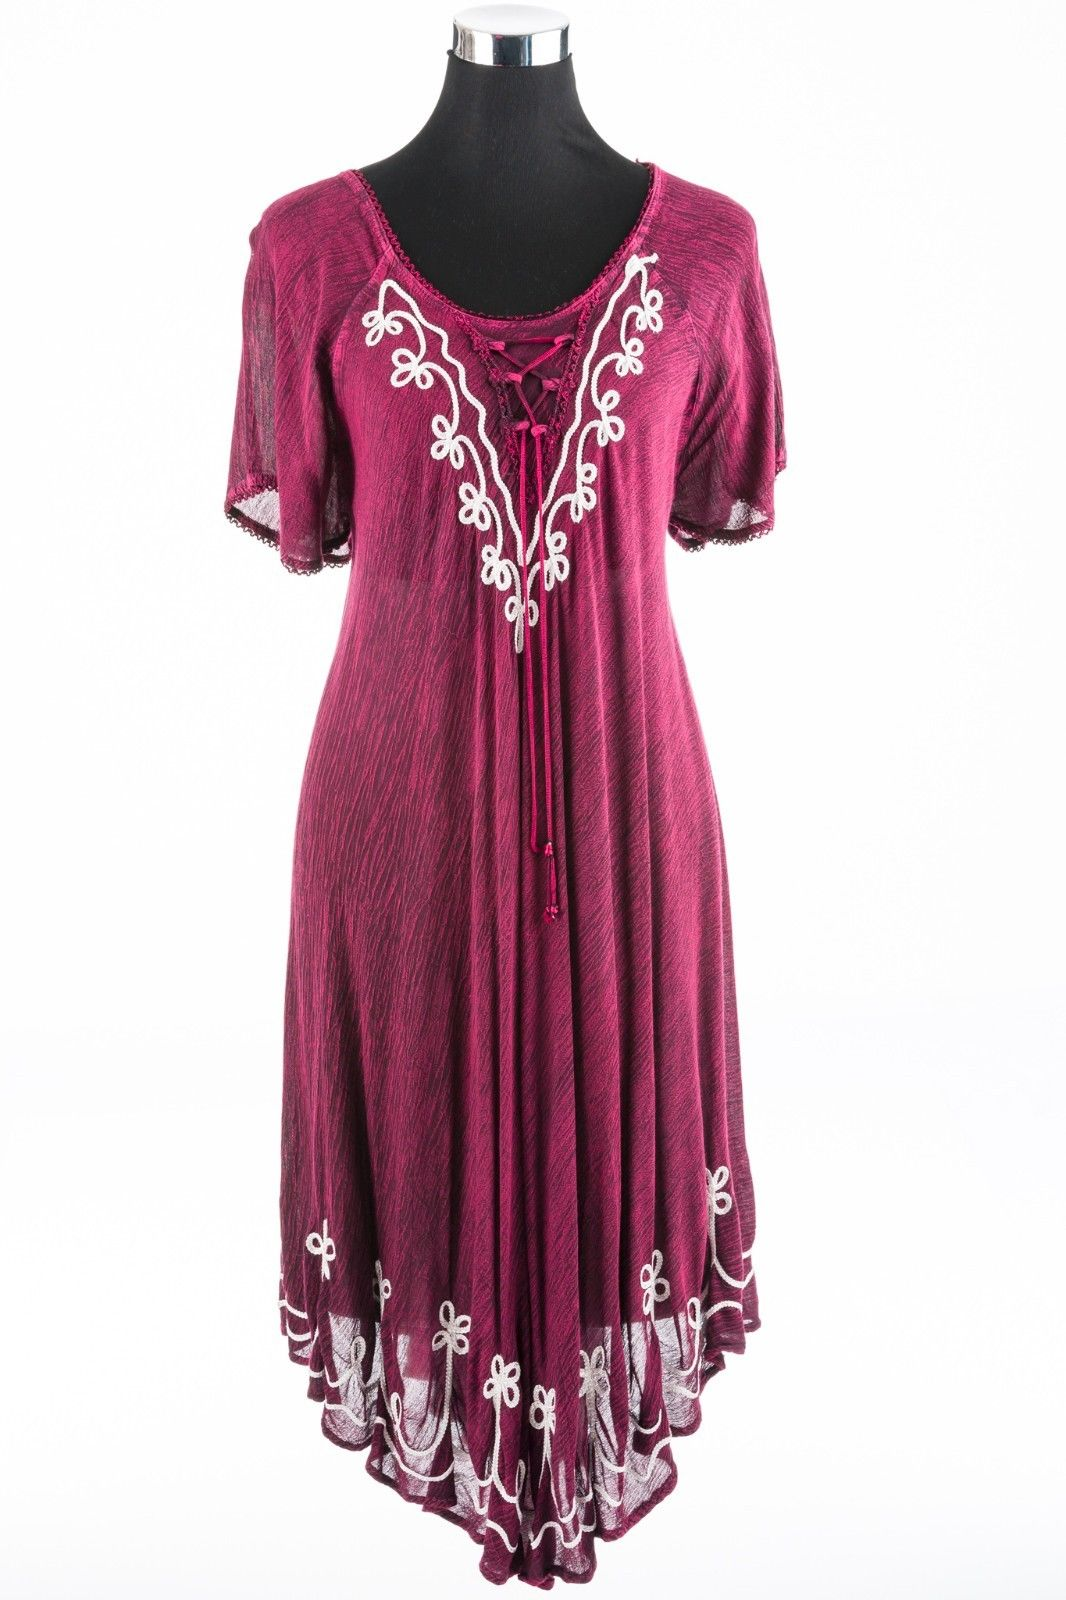 FESTIVAL-CLOTHING-Burgundy-Umbrella-Dress-Bohemian-Style-One-Size-Fits-10-to-18-381941191152